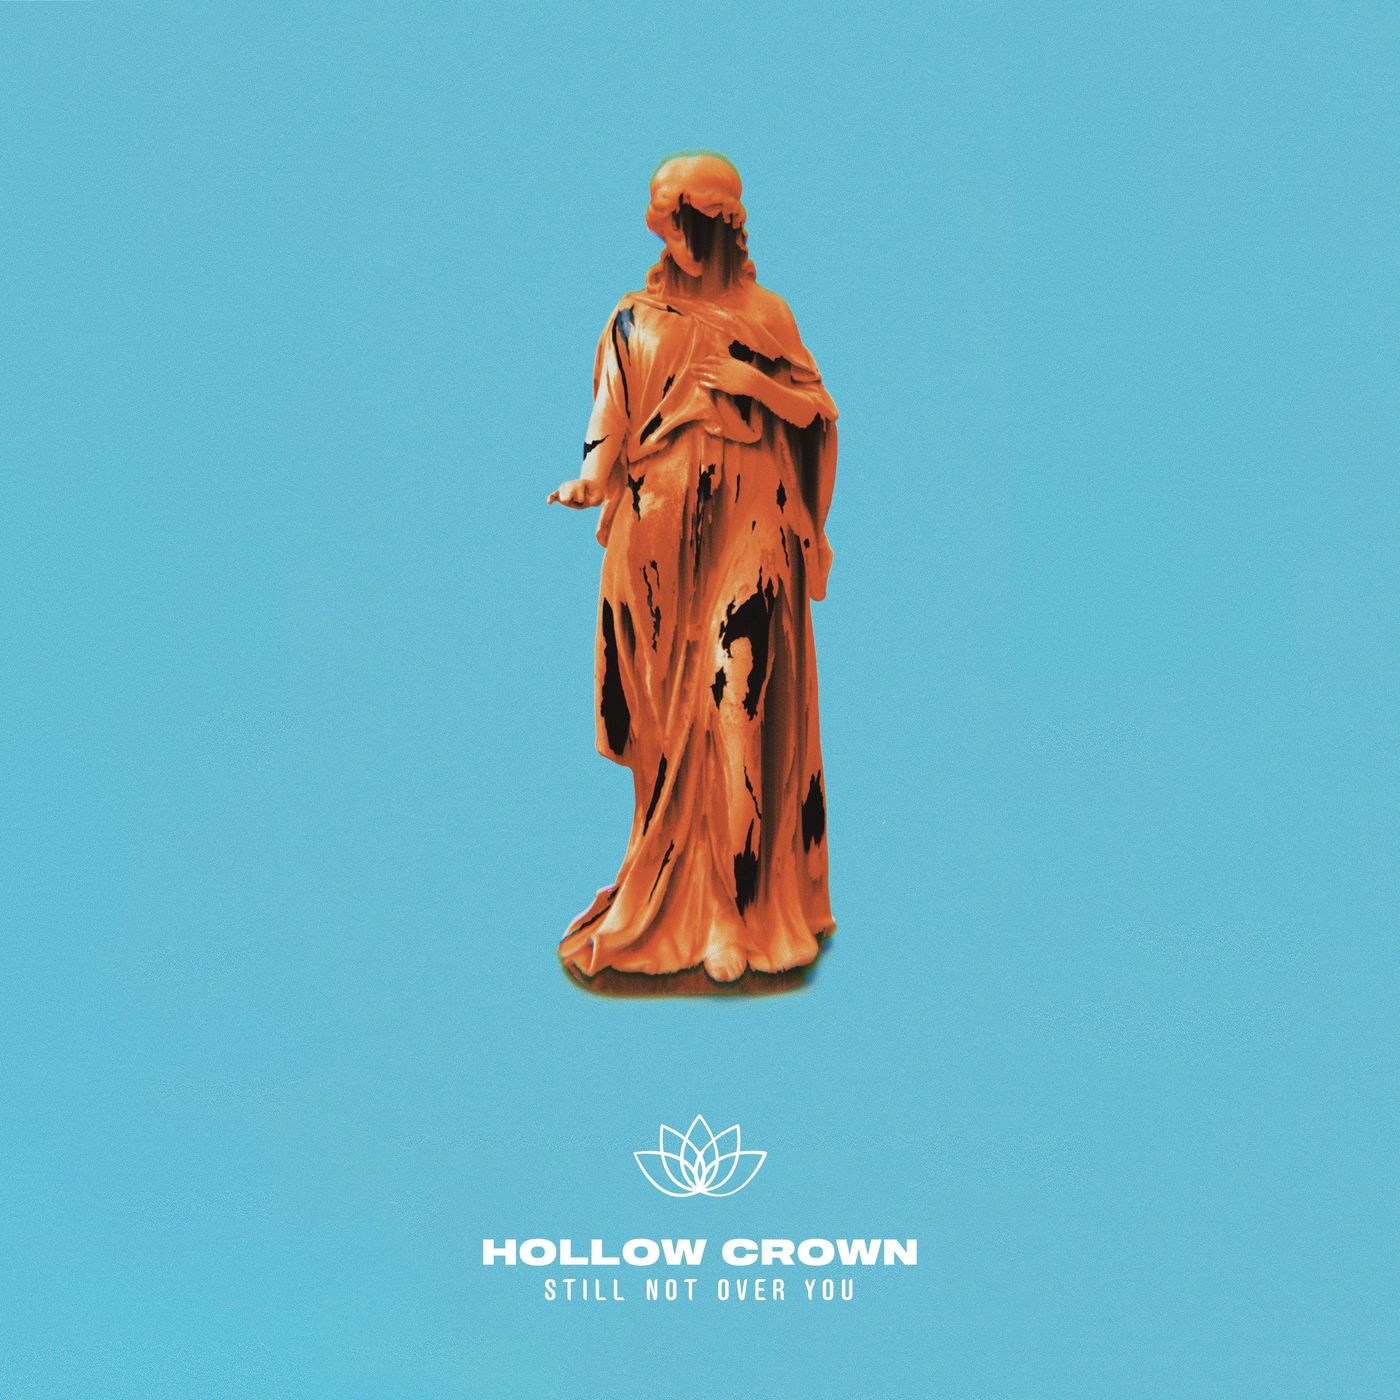 Hollow Crown - Still Not Over You [single] (2020)